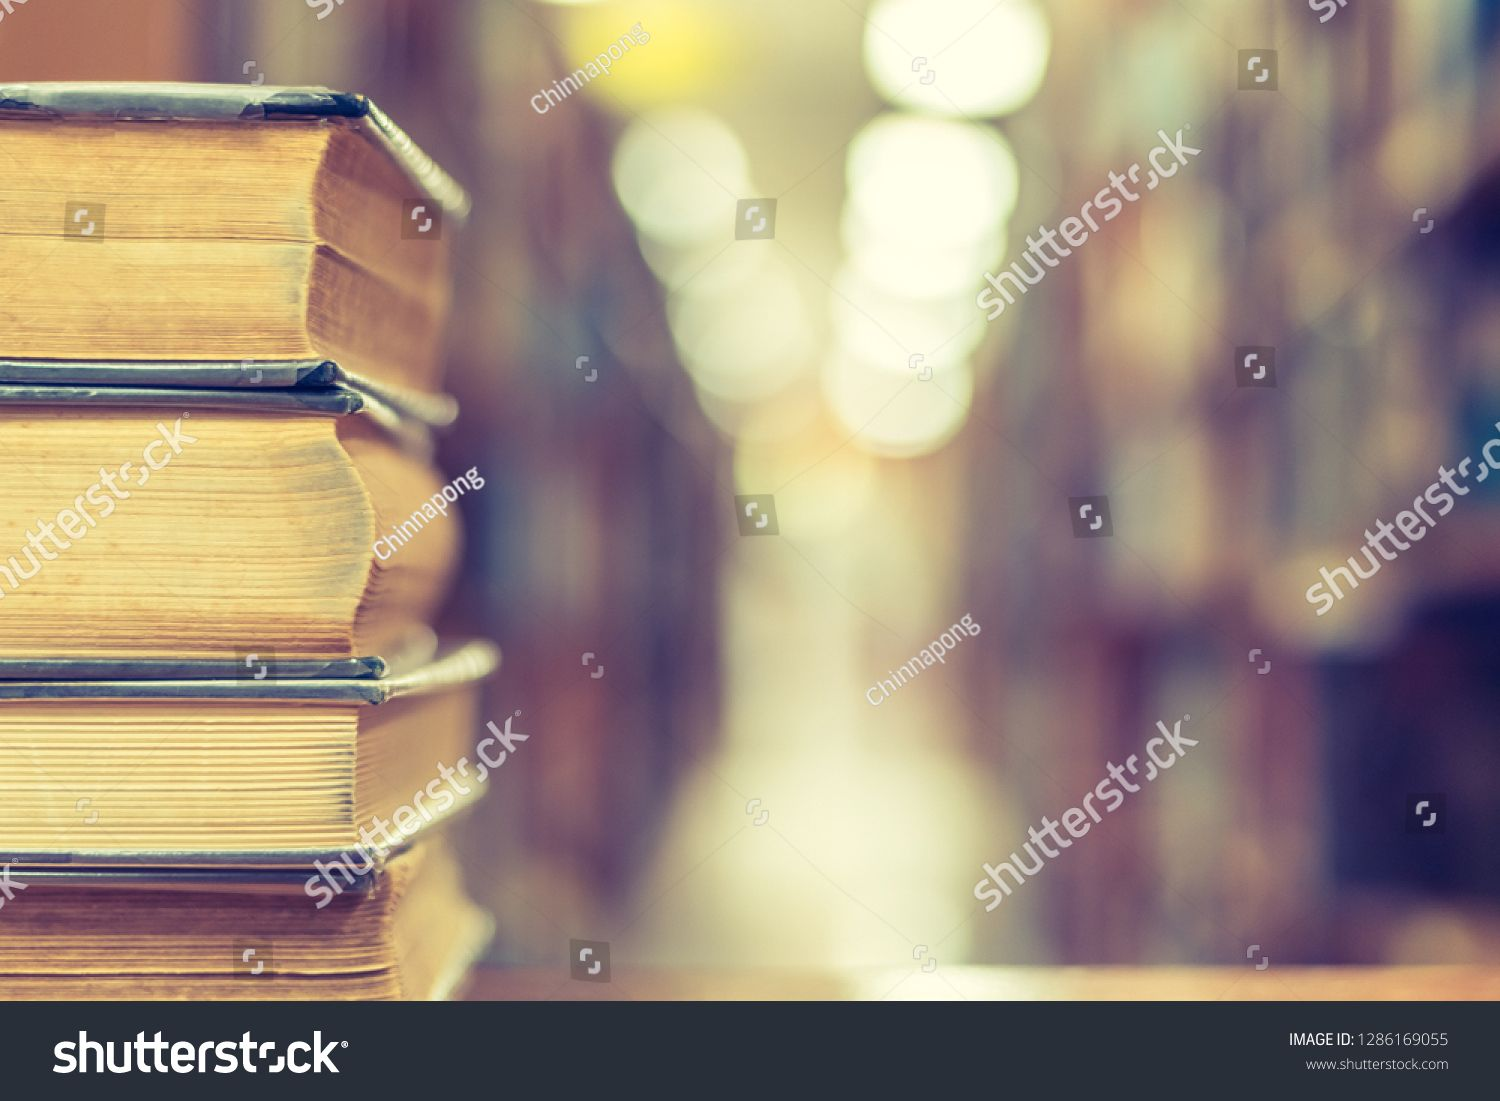 Book stack in library study room with bookshelf for business and education background, class learning and back to school concept ,